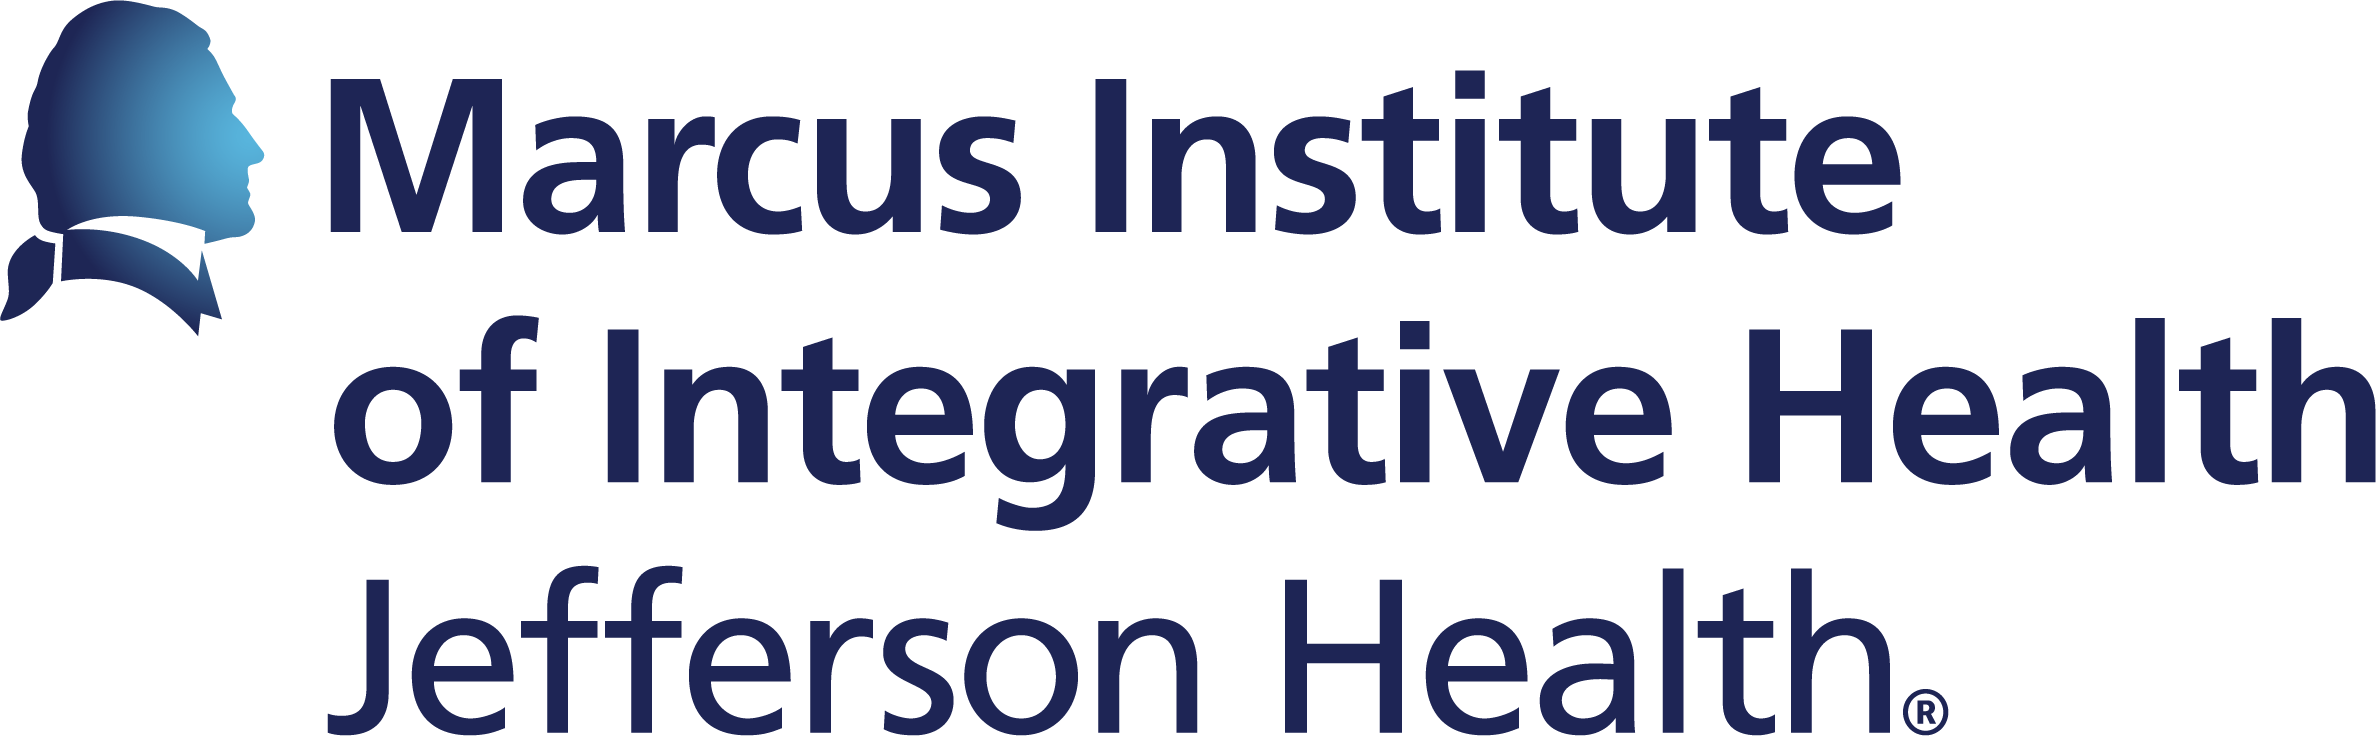 Marcus Institute Logo image